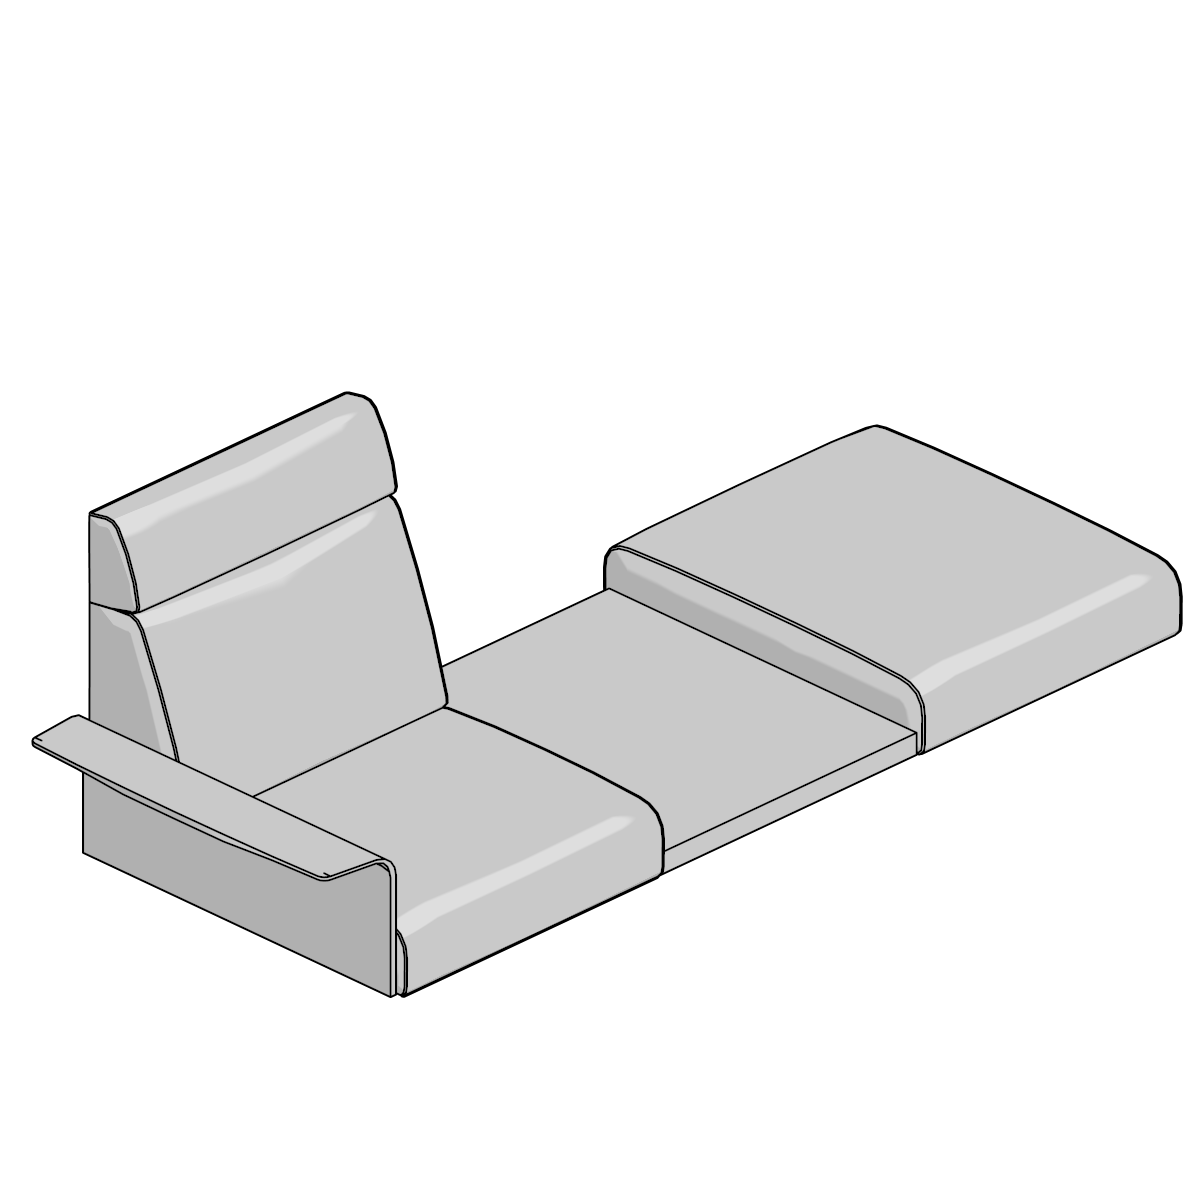 Pleasing 3D Models Archive Steelcase Caraccident5 Cool Chair Designs And Ideas Caraccident5Info